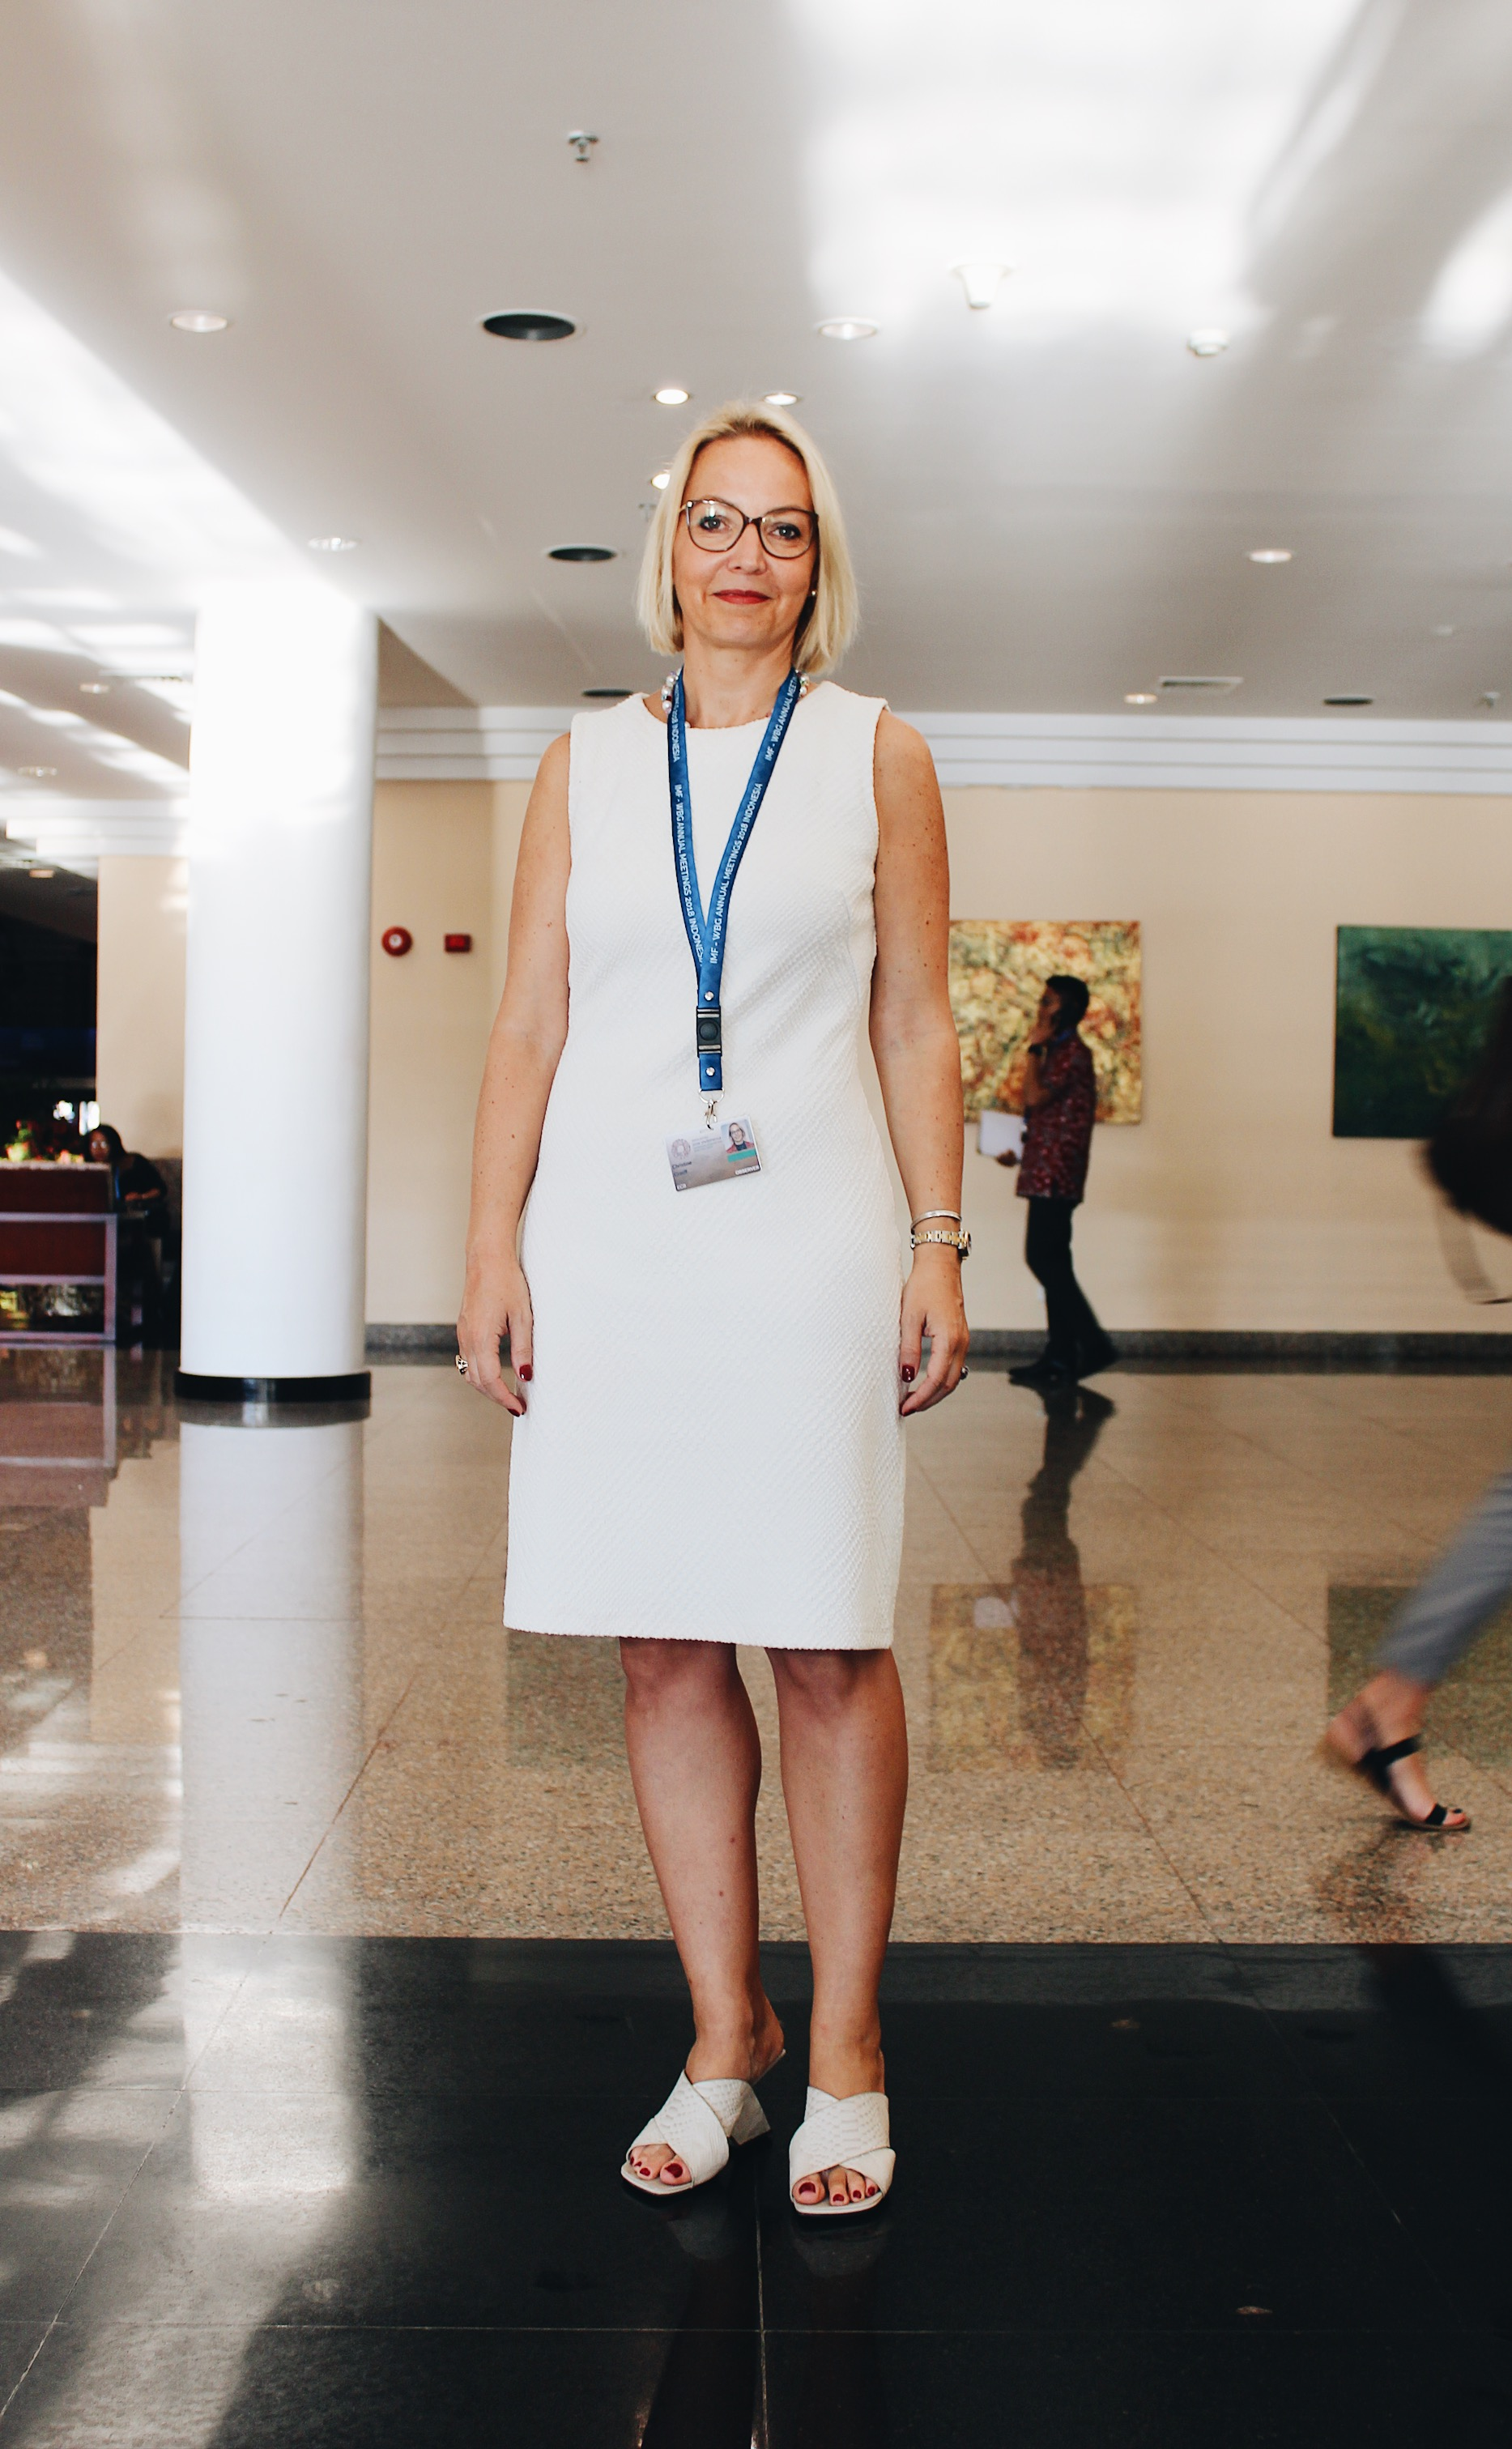 Christine Graeff, European Central Bank